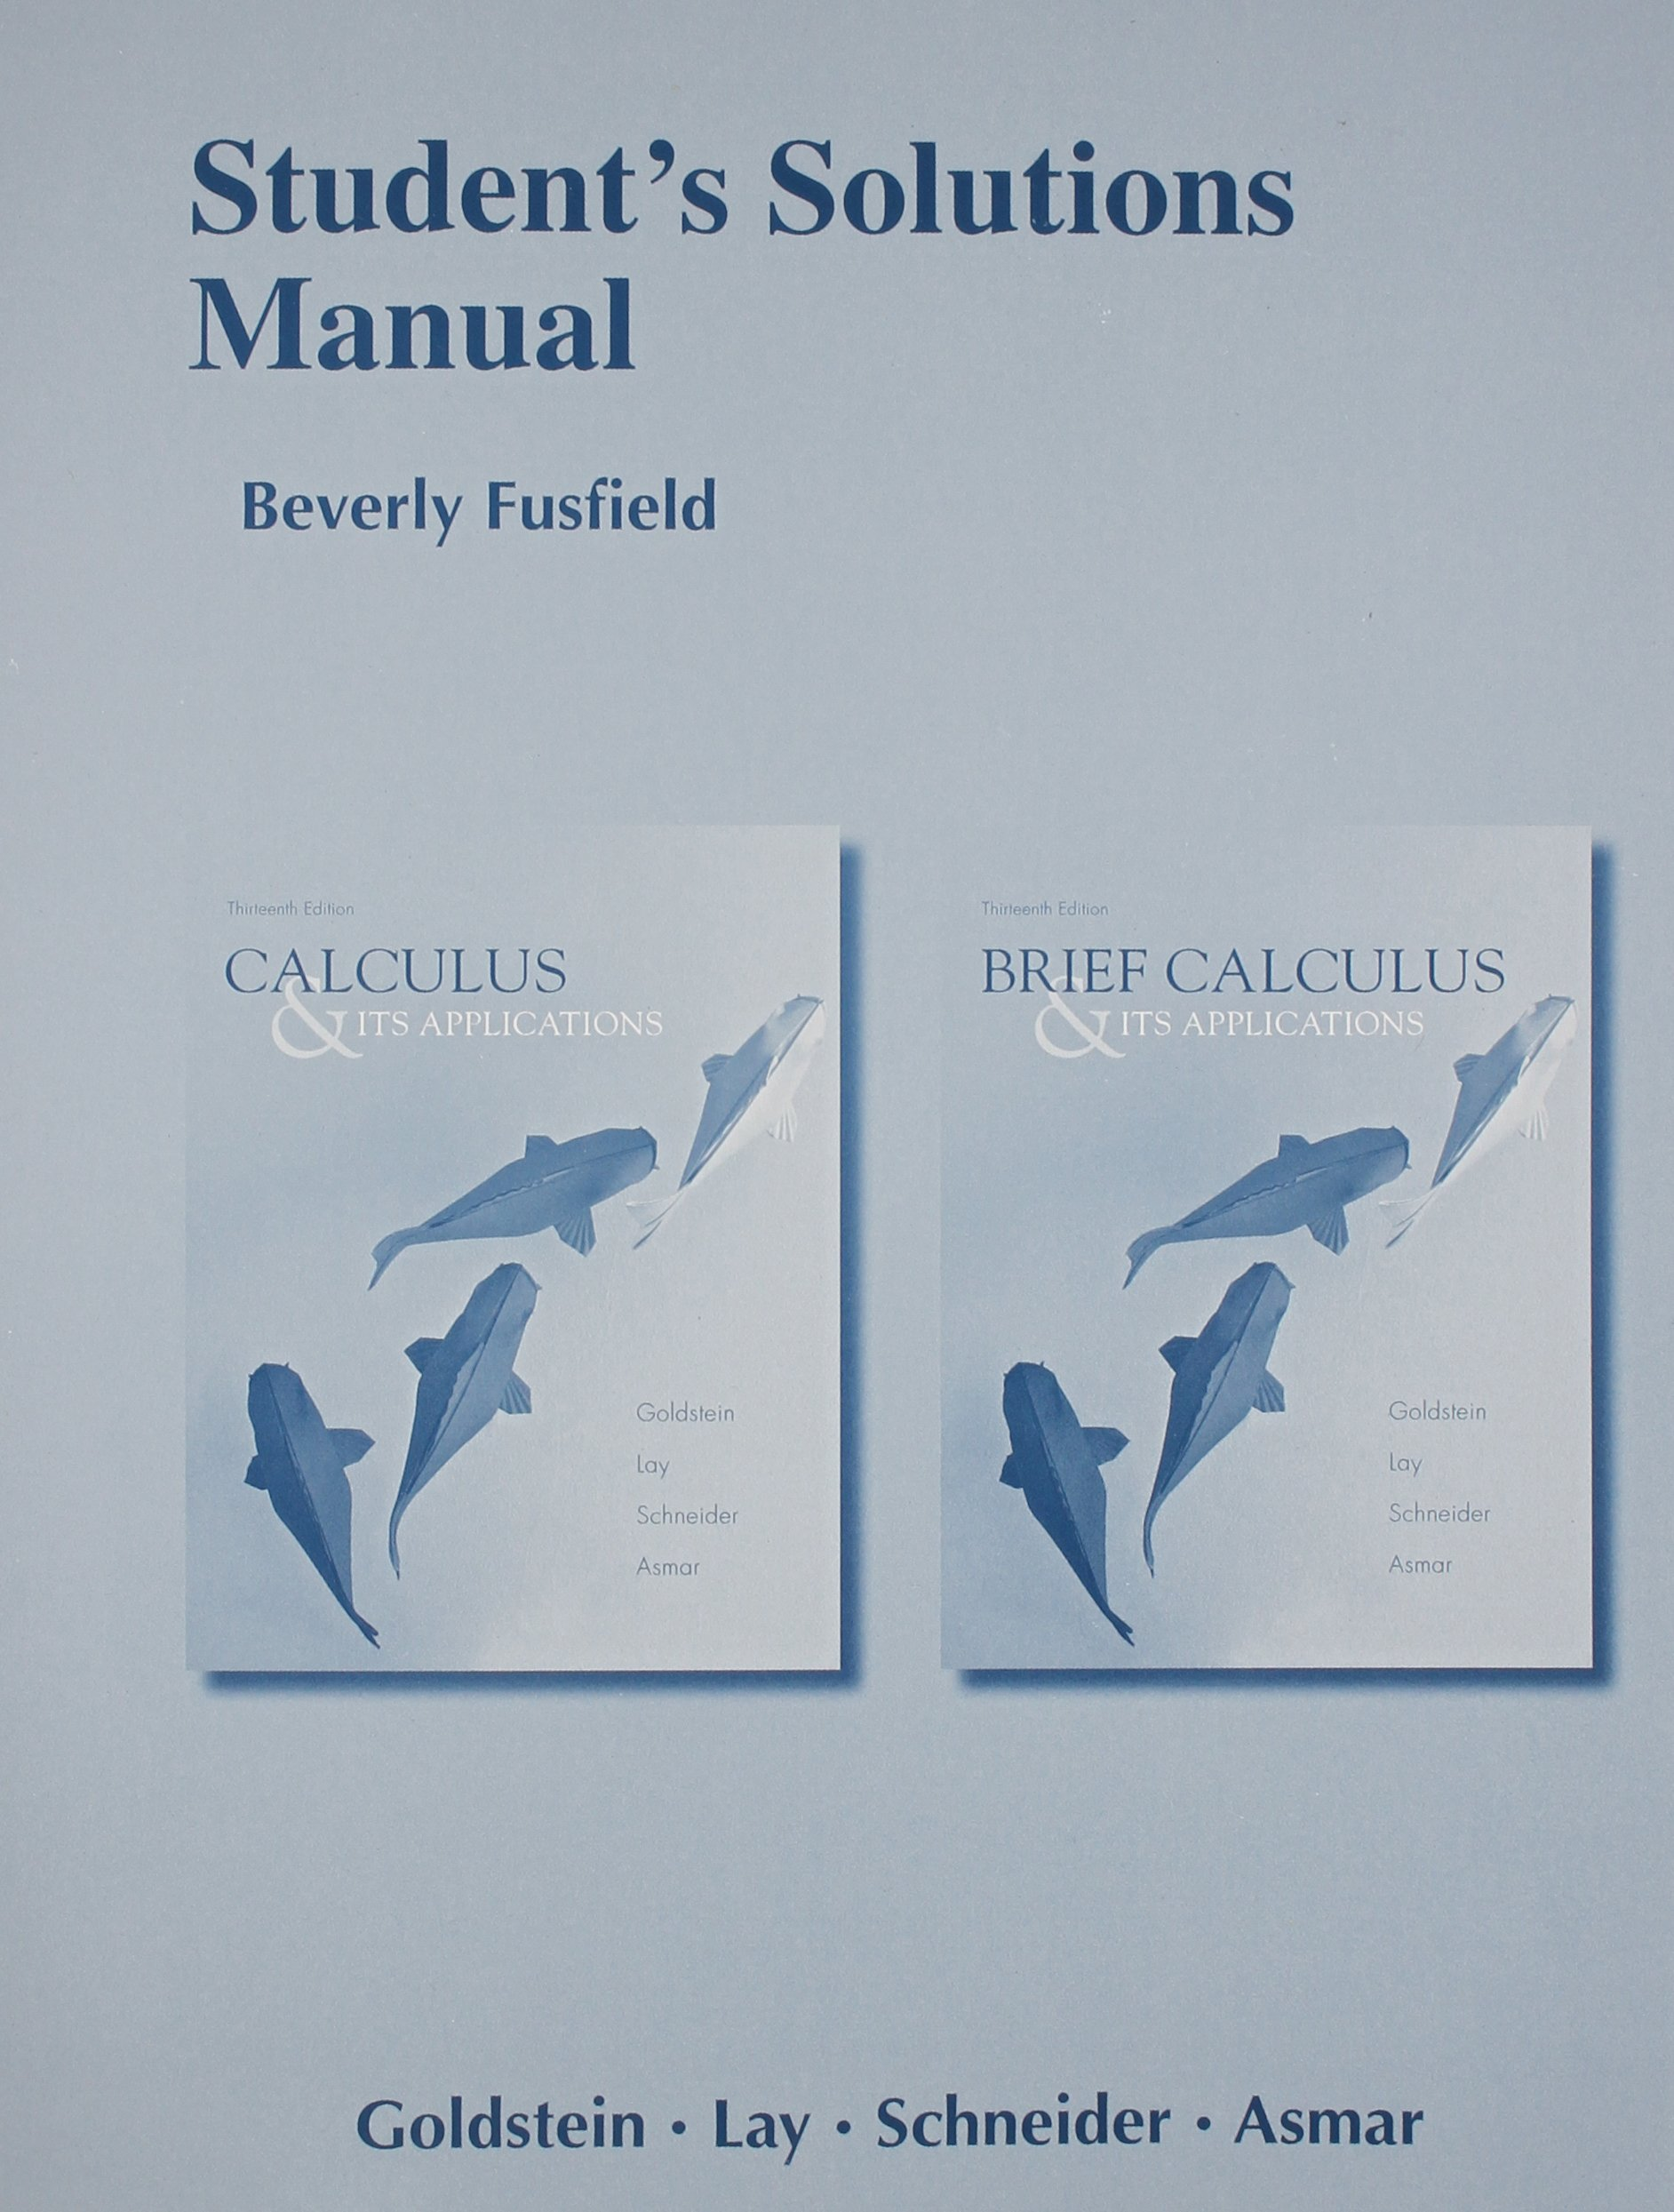 Student Solutions Manual for Calculus & Its Applications and Brief Calculus  & Its Applications: Larry J. Goldstein, David C. Lay, David I. Schneider,  ...